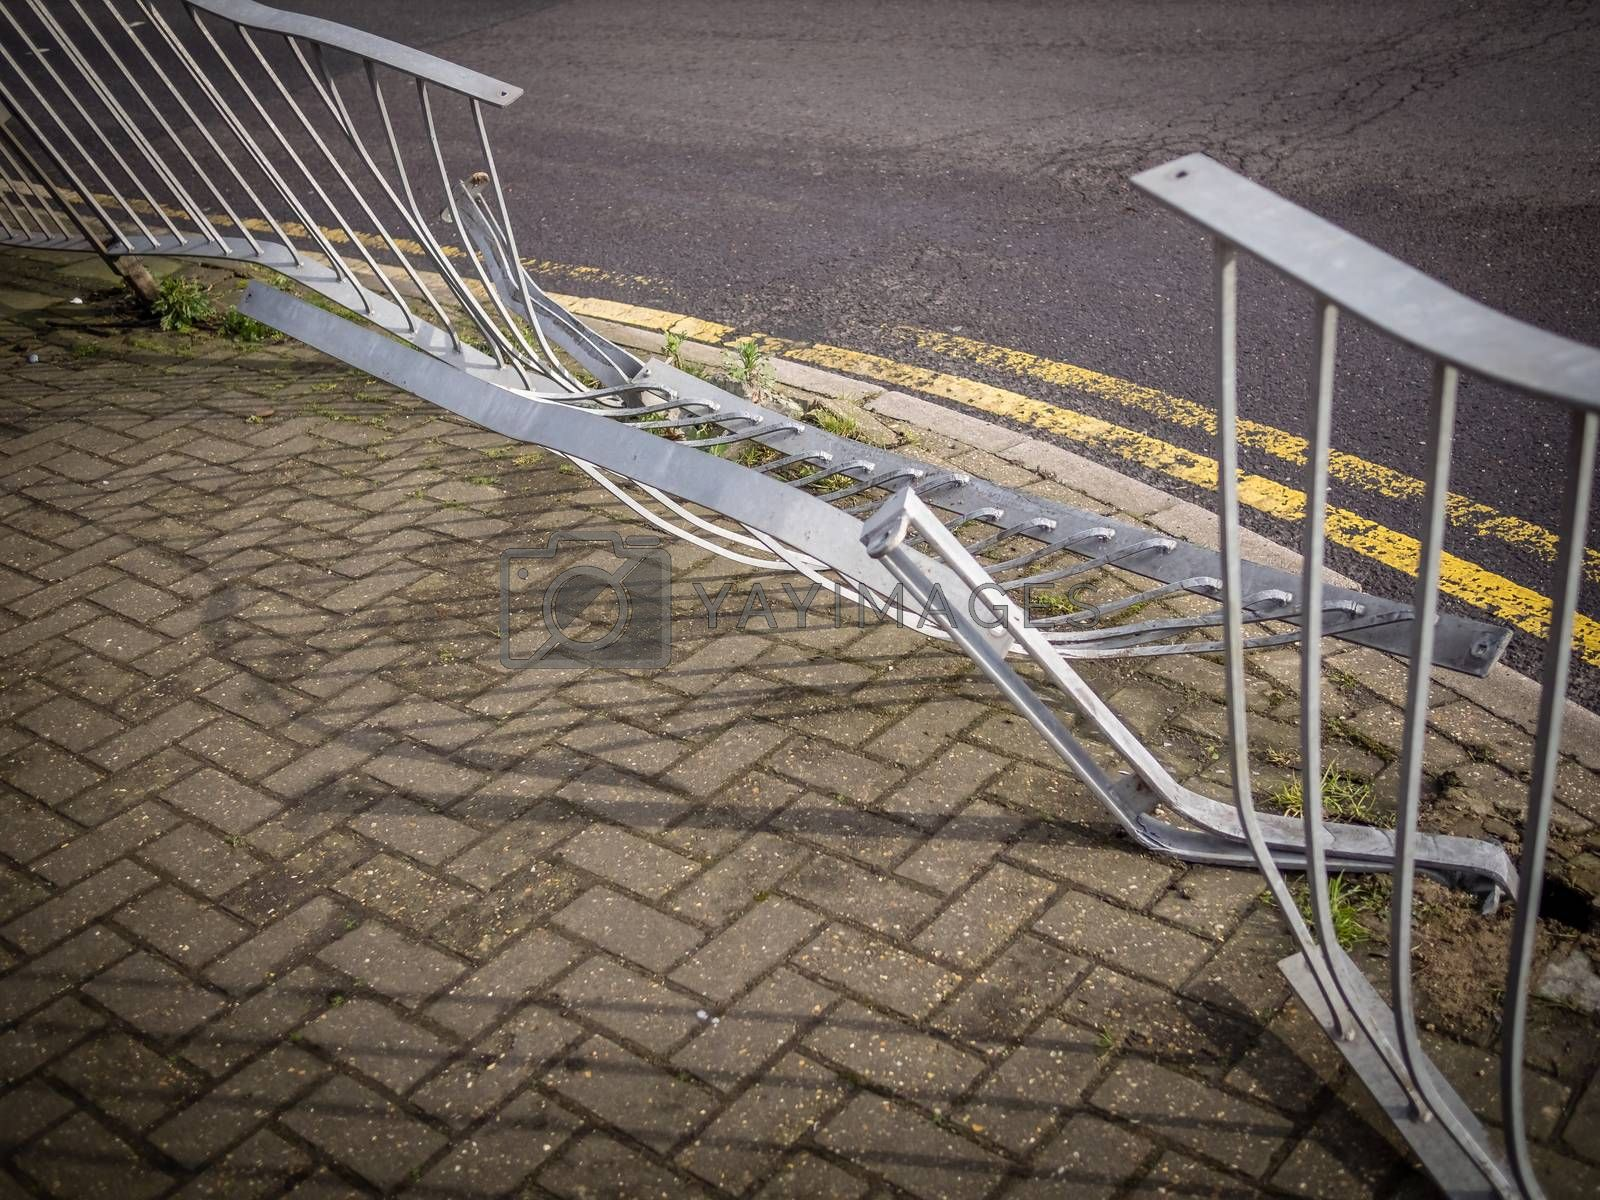 Damaged steel railing after car accident, London suburb